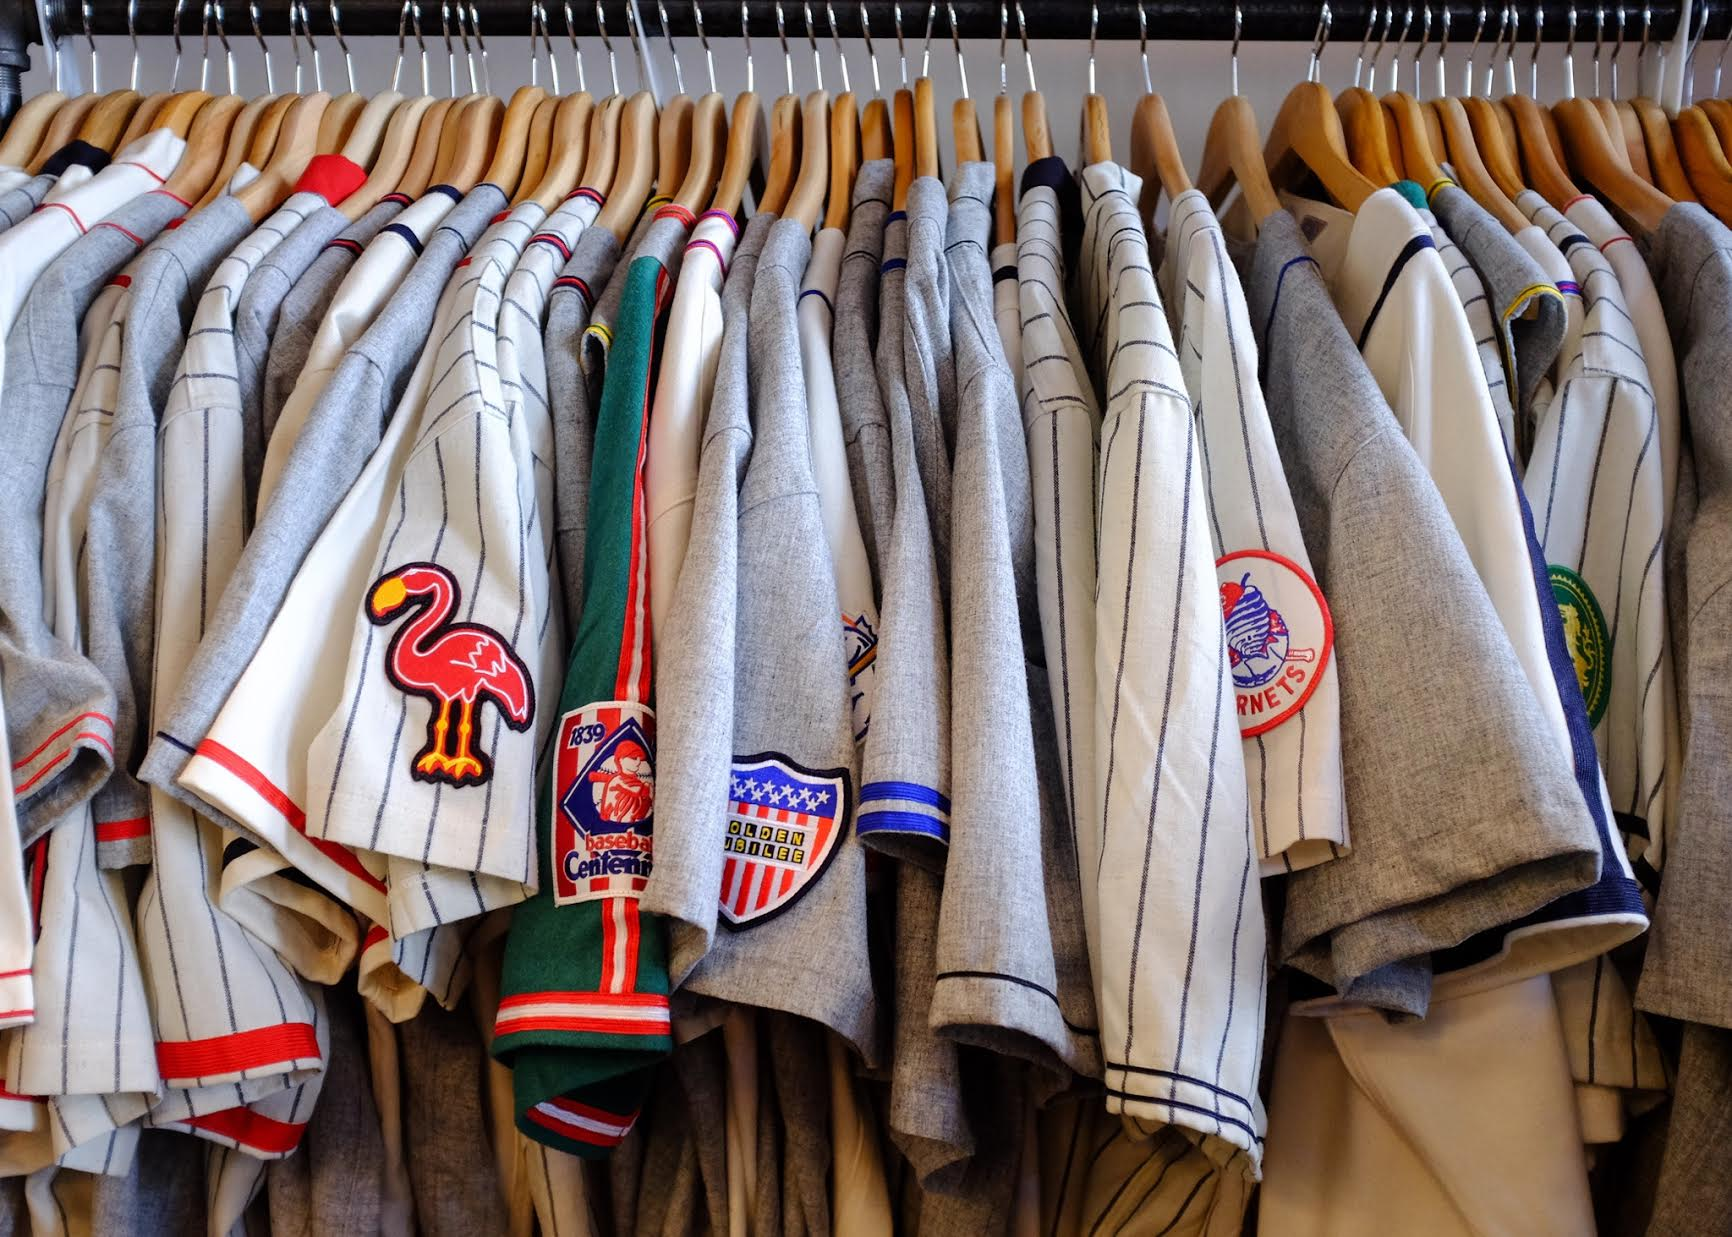 Ebbets Field jerseys